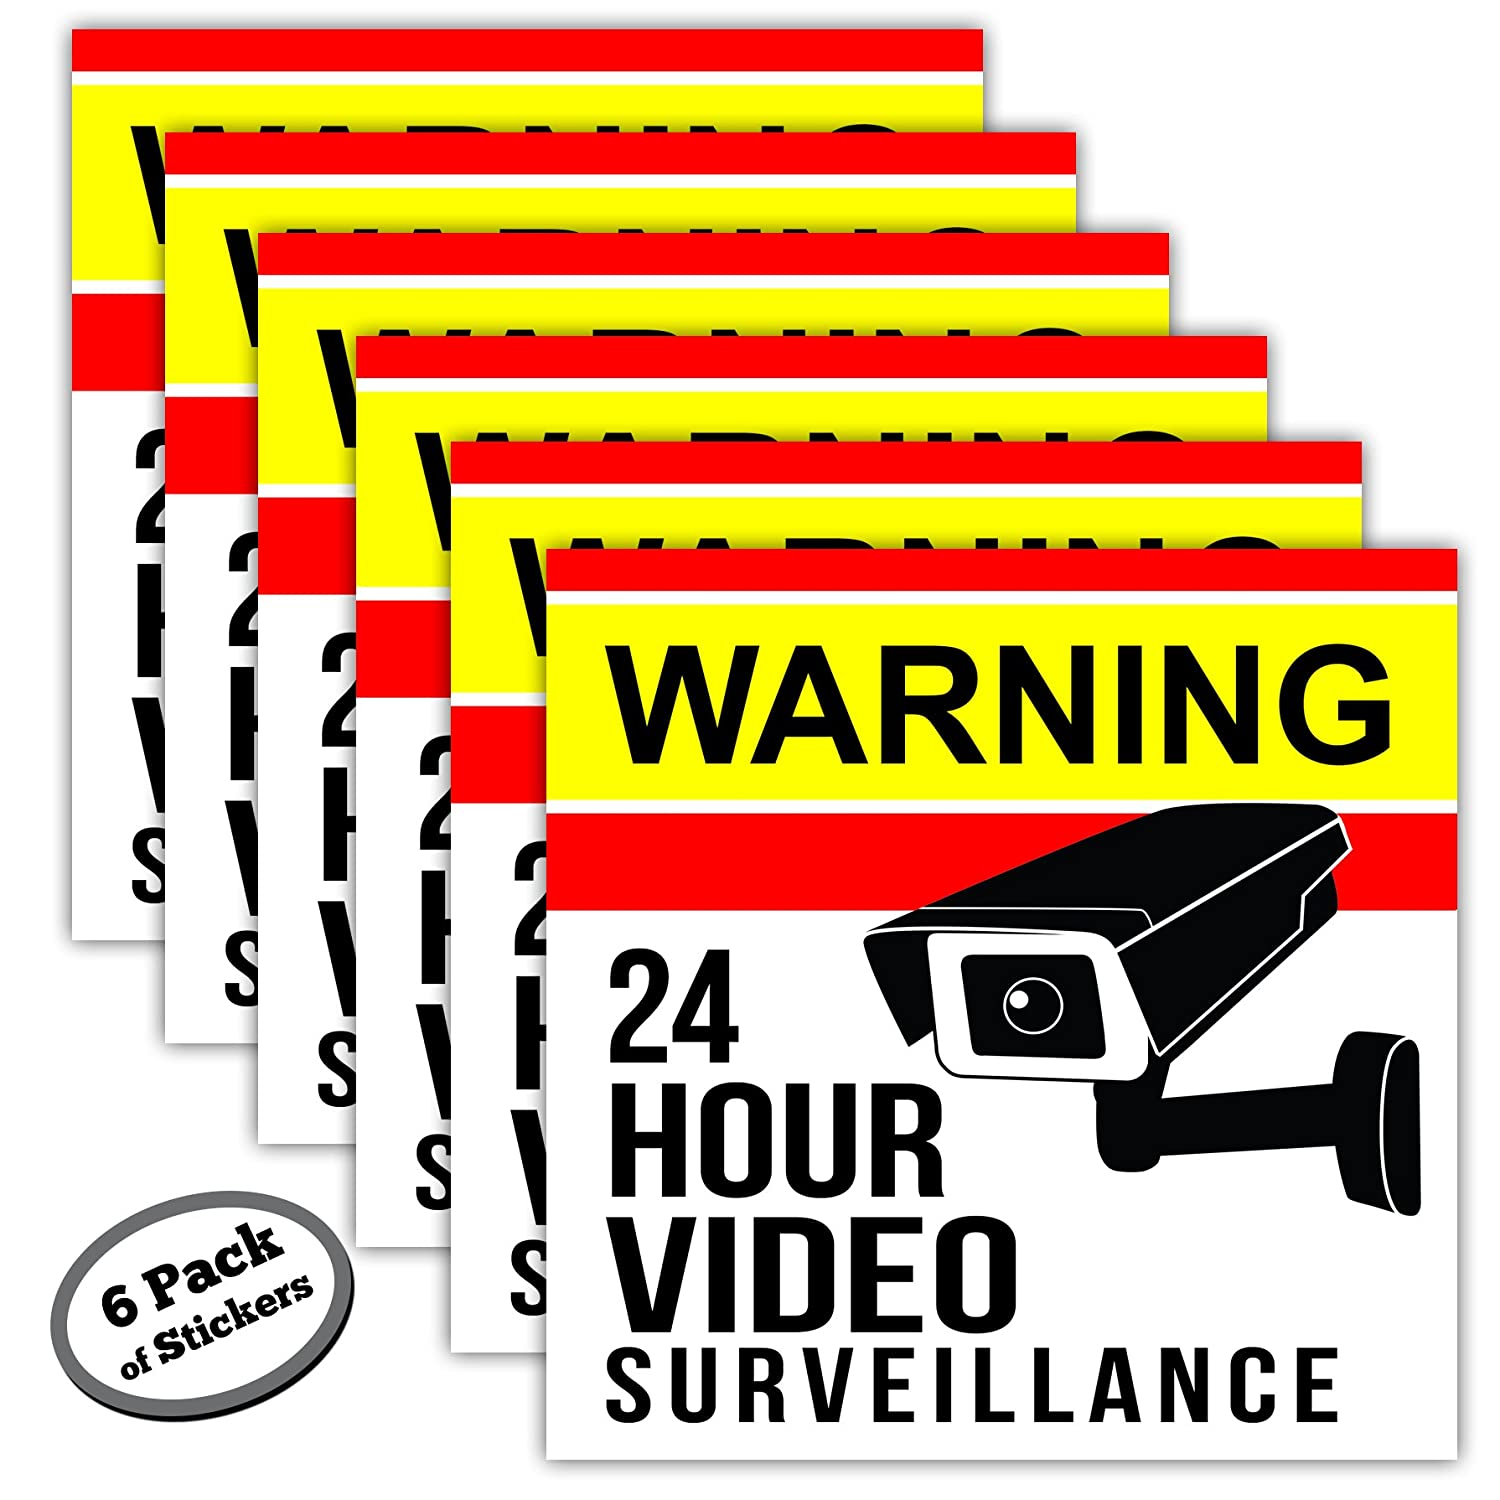 6-Pack Video Surveillance Stickers - 5 inch - Adhesive is on Front & Back. Like Signs, The Security Warning Stickers Work in Your Home Or Business Even if You Don't Have a Camera Or Alarm System. Maye Market